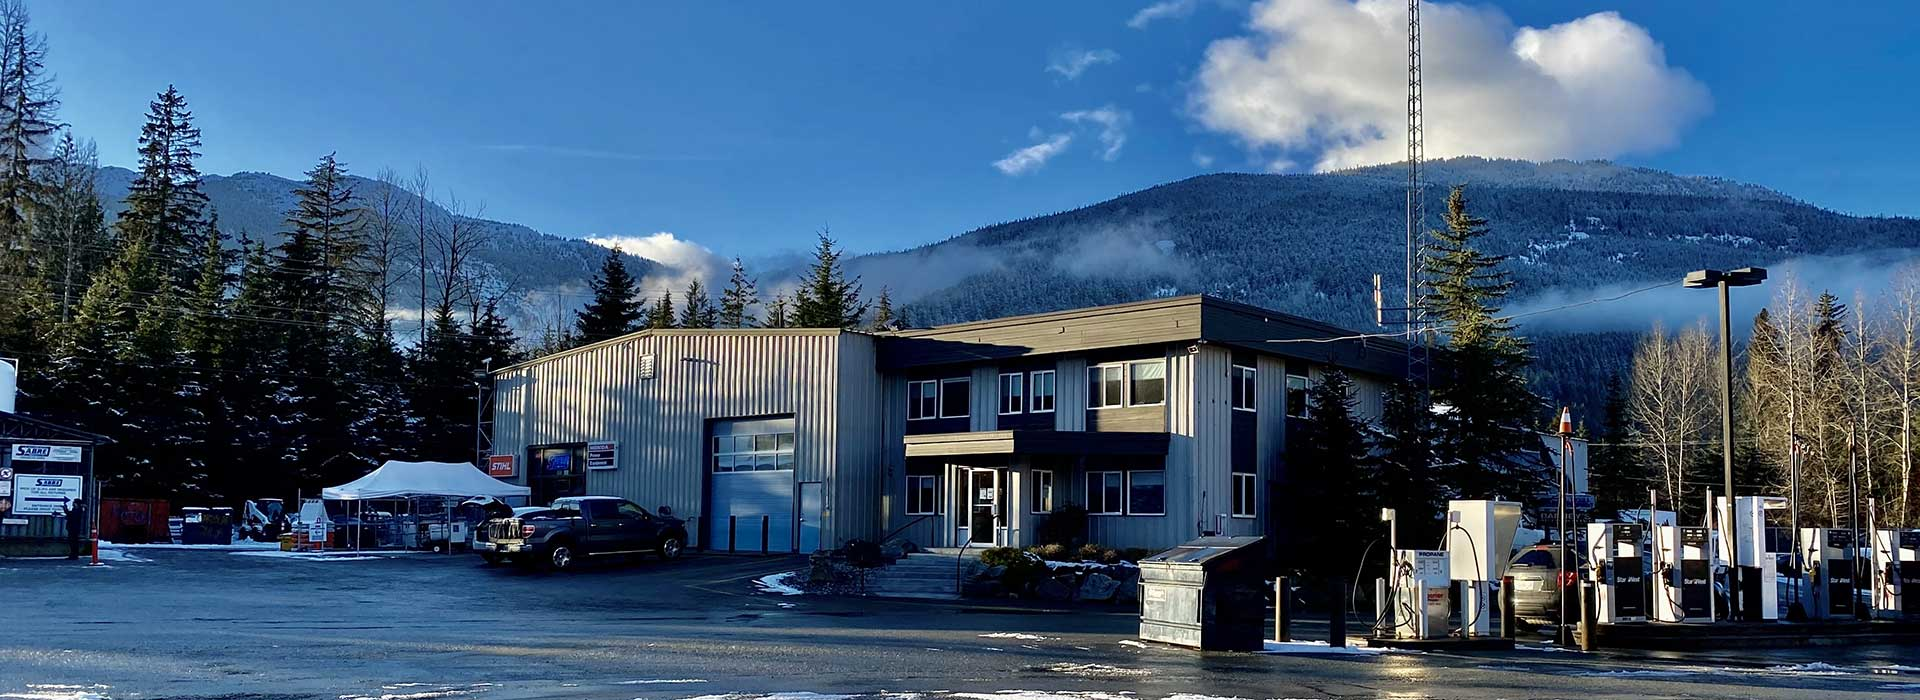 Your Local Rental Resource in the Whistler BC area